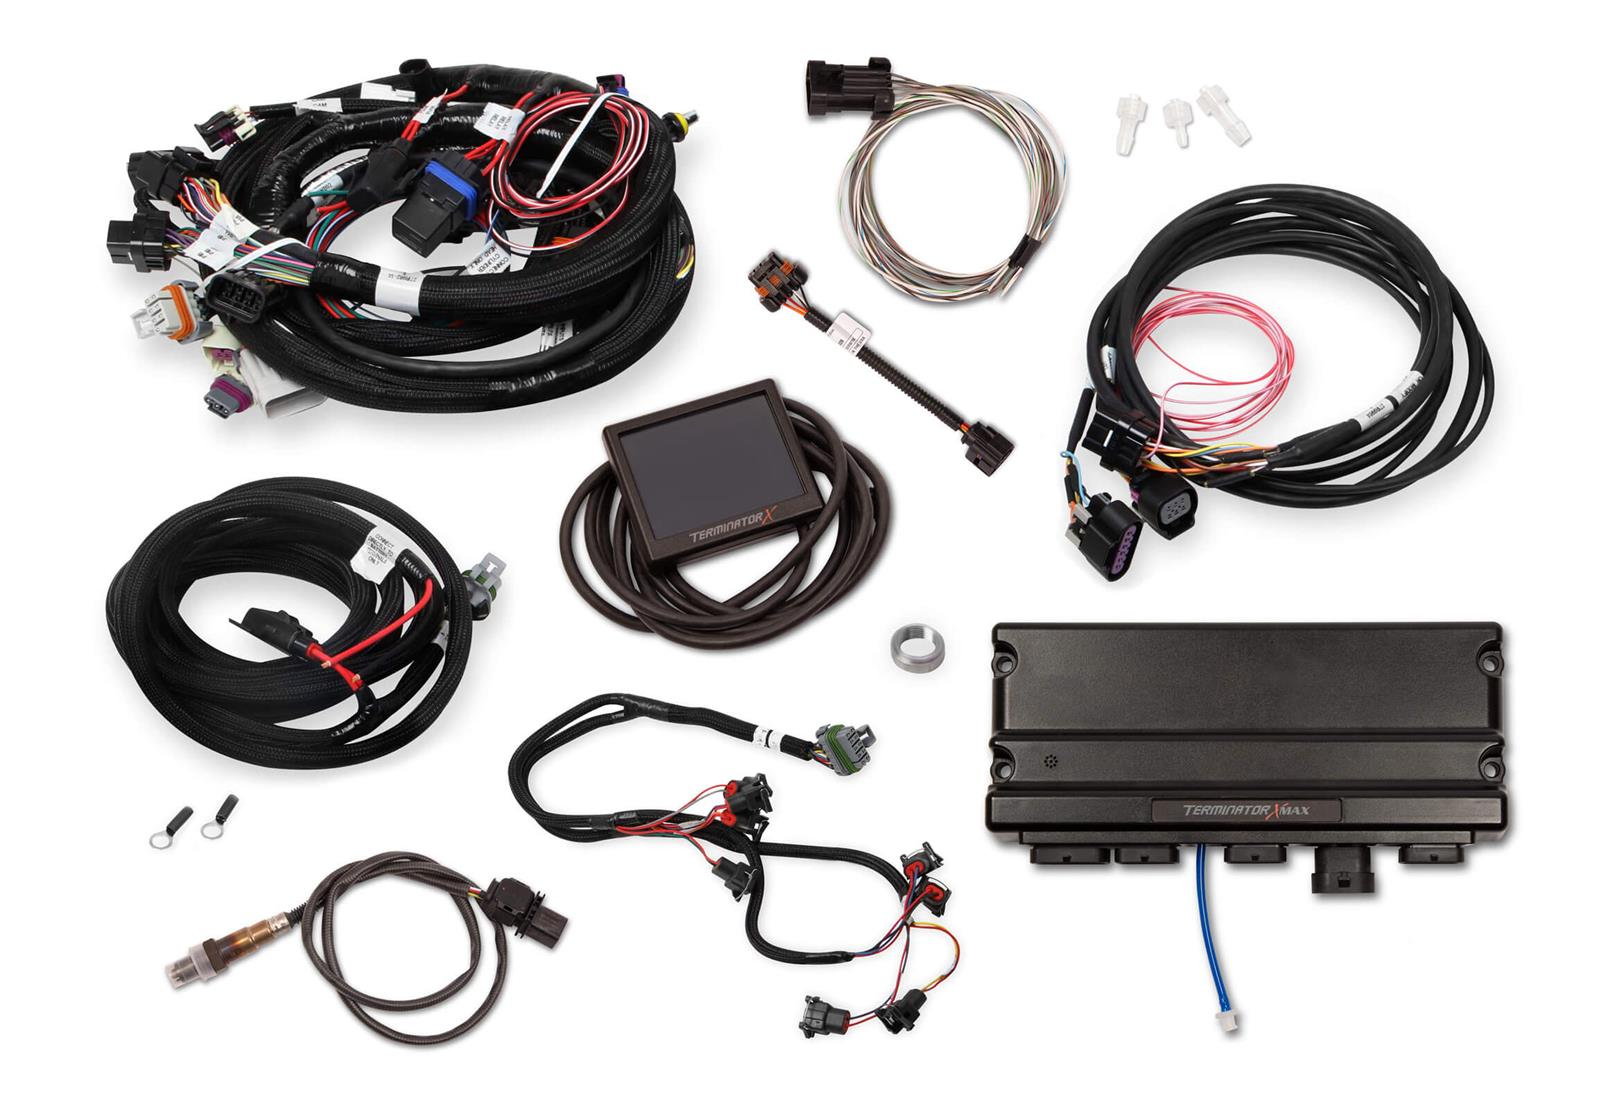 hight resolution of holley terminator x max engine management systems 550 929 free shipping on orders over 99 at summit racing